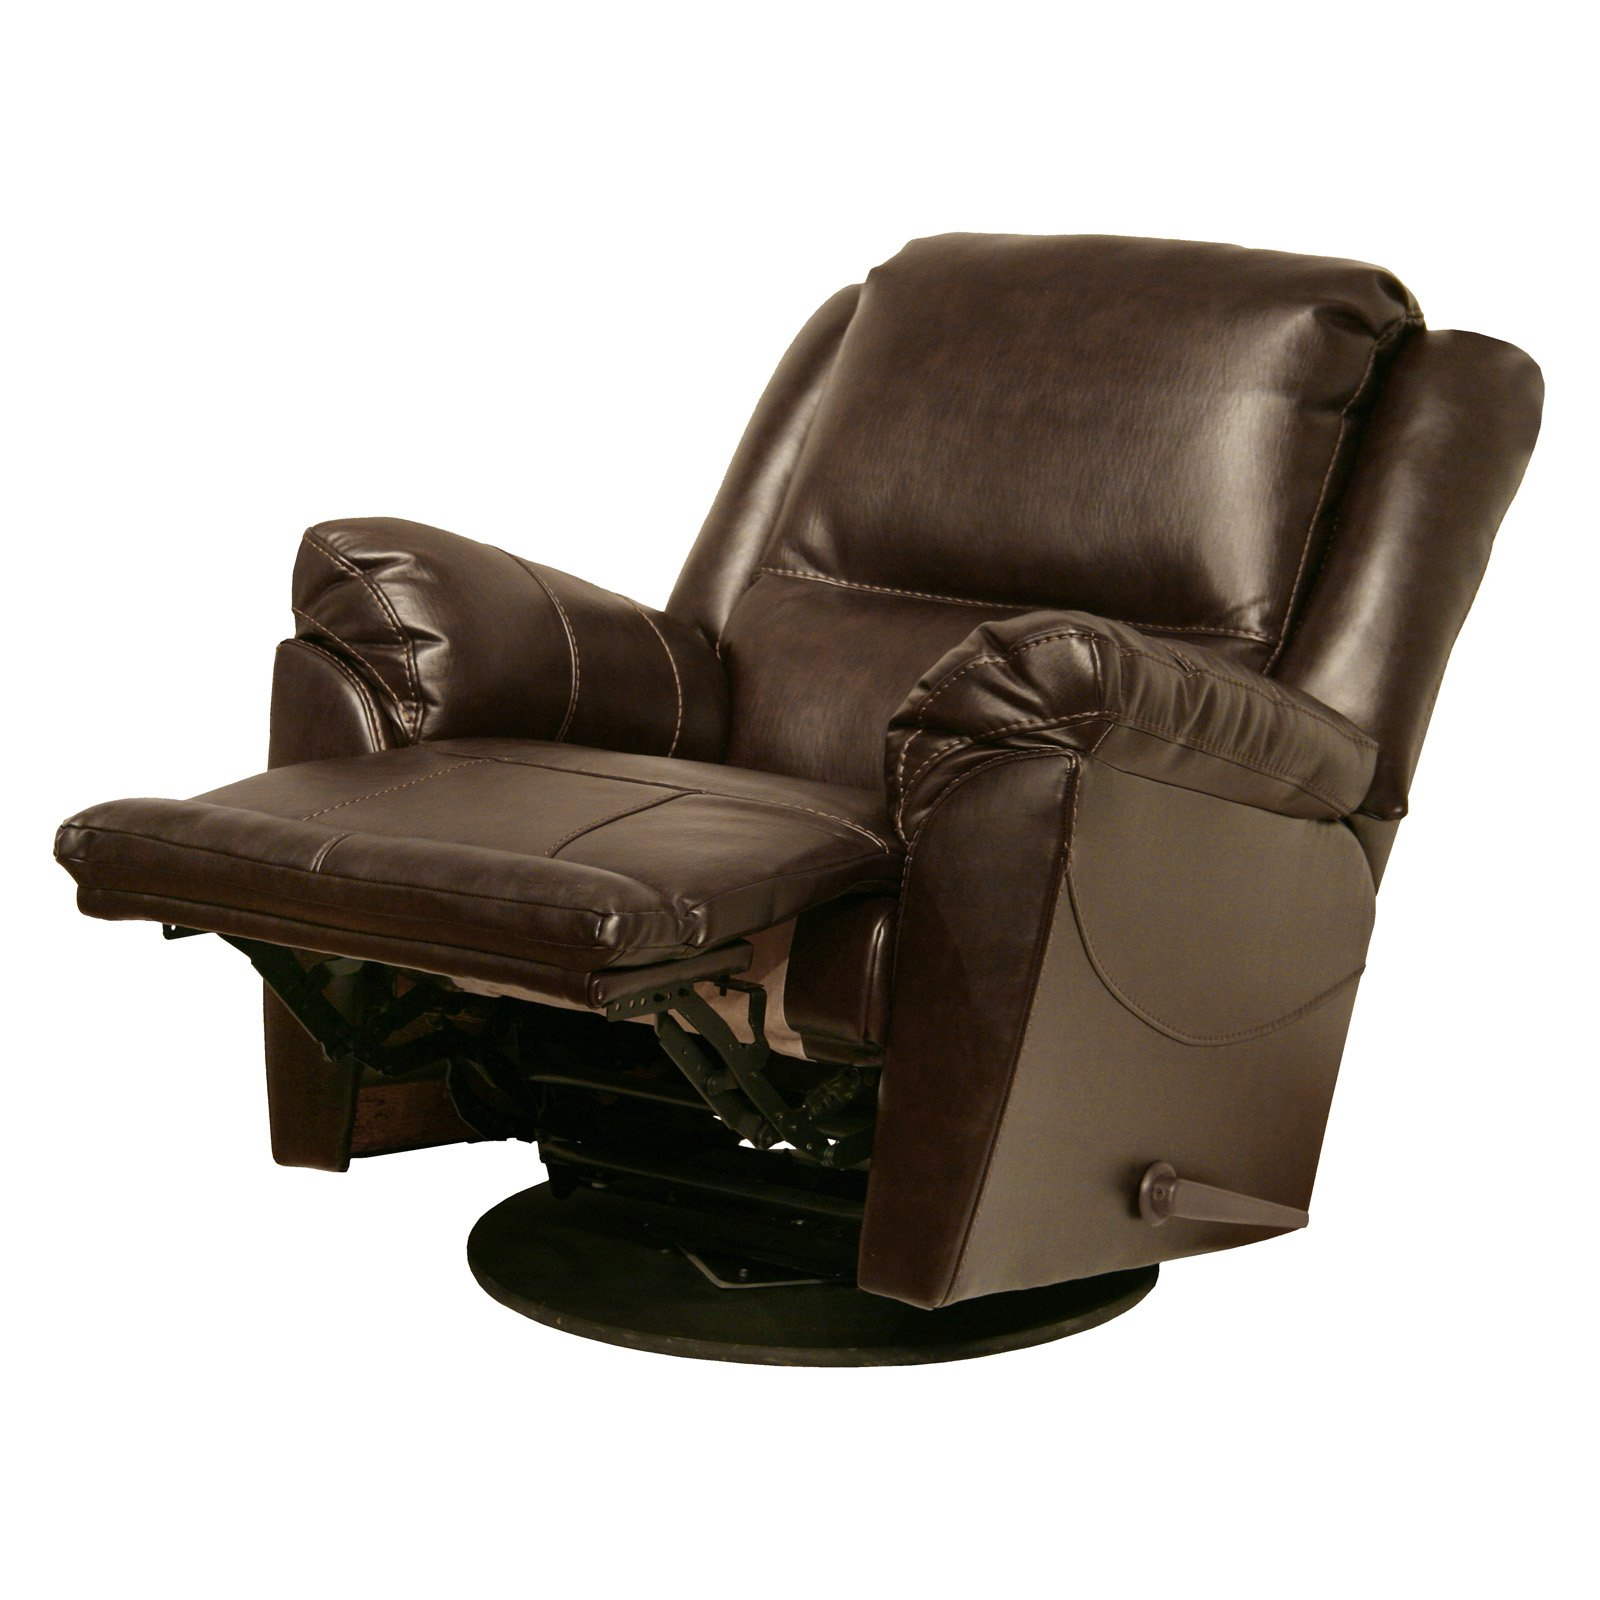 Swivel Tobacco Leather Chairs For Fashionable Catnapper Maverick Chaise Leather Swivel Glider Recliner – Walmart (View 17 of 20)